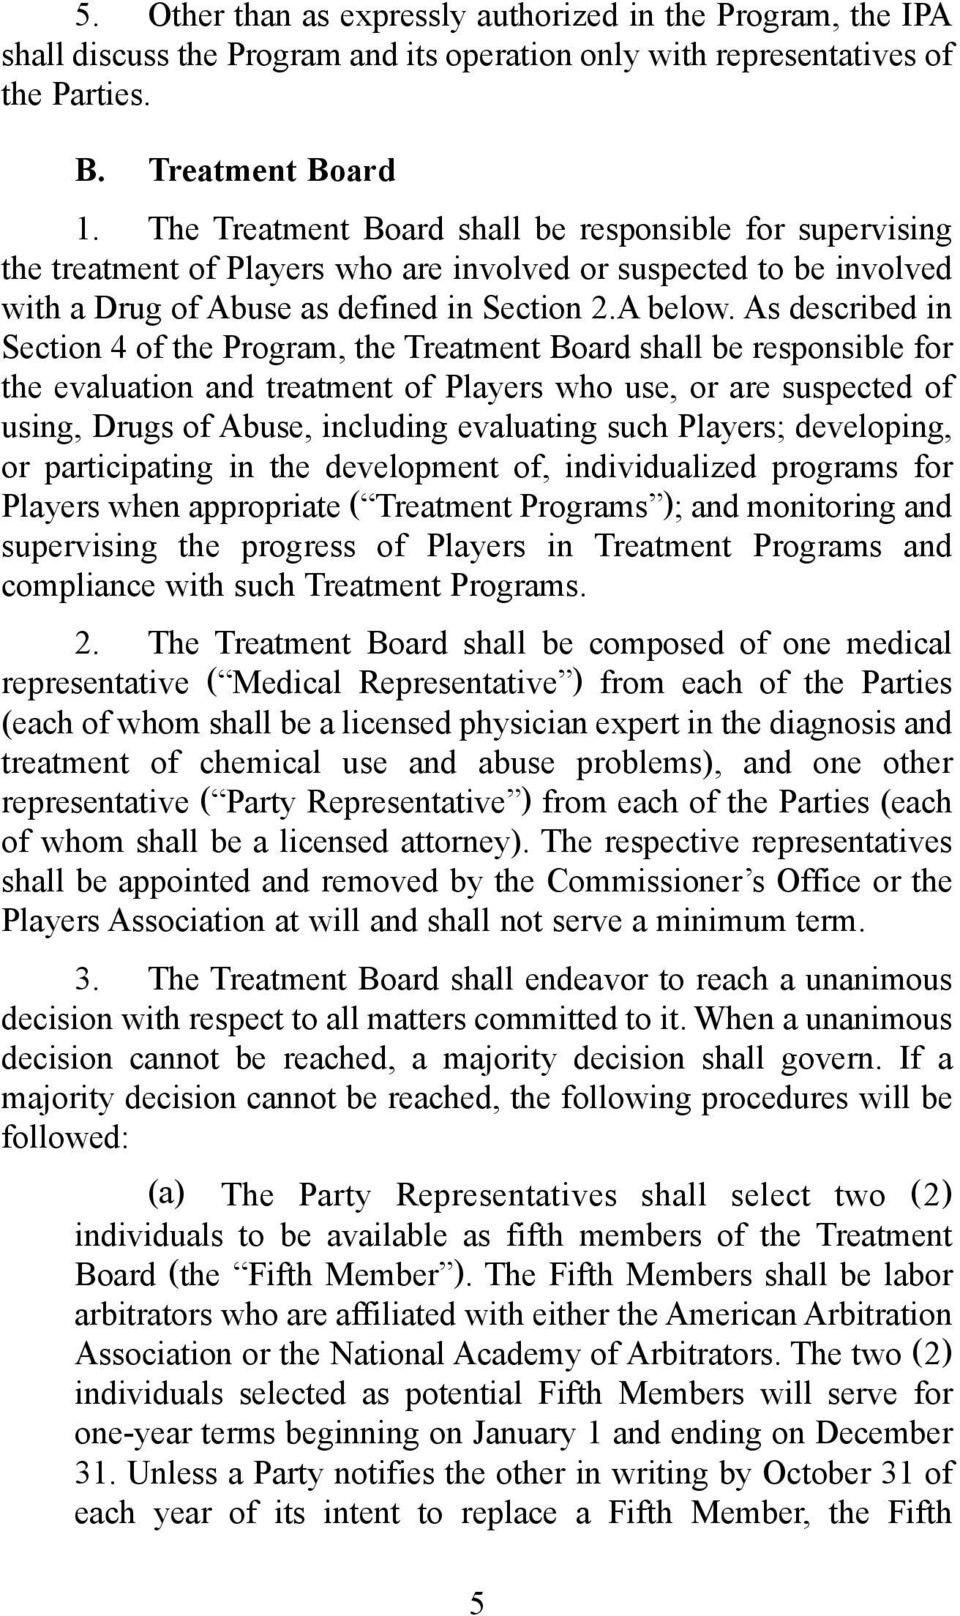 As described in Section 4 of the Program, the Treatment Board shall be responsible for the evaluation and treatment of Players who use, or are suspected of using, Drugs of Abuse, including evaluating